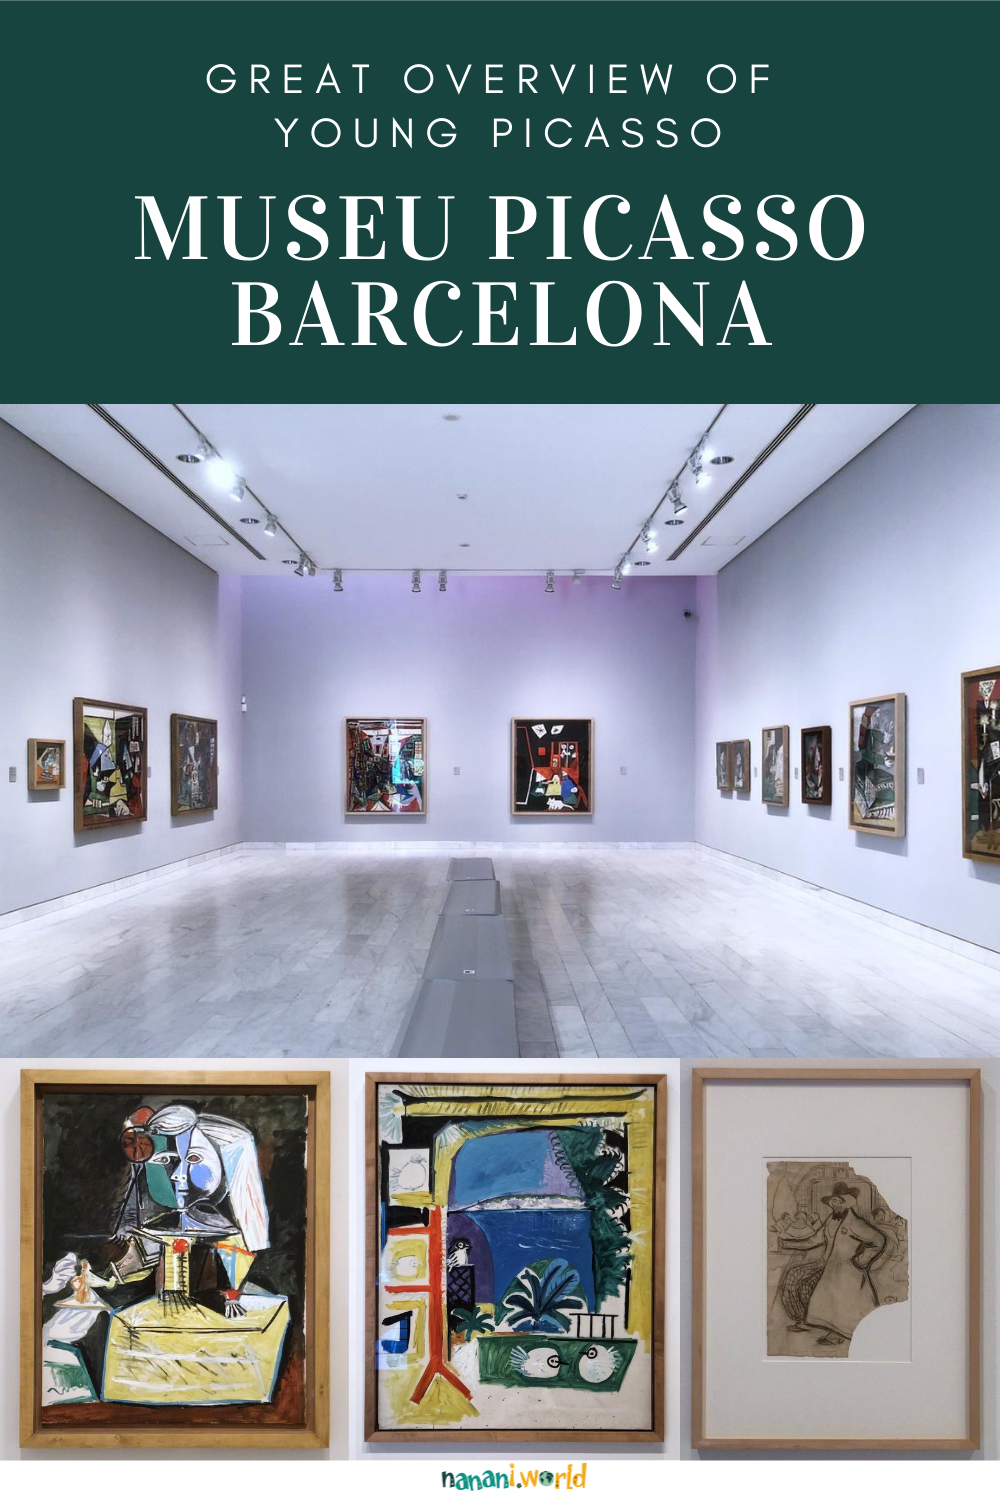 Museu Picasso Barcelona: Great Overview of Young Picasso